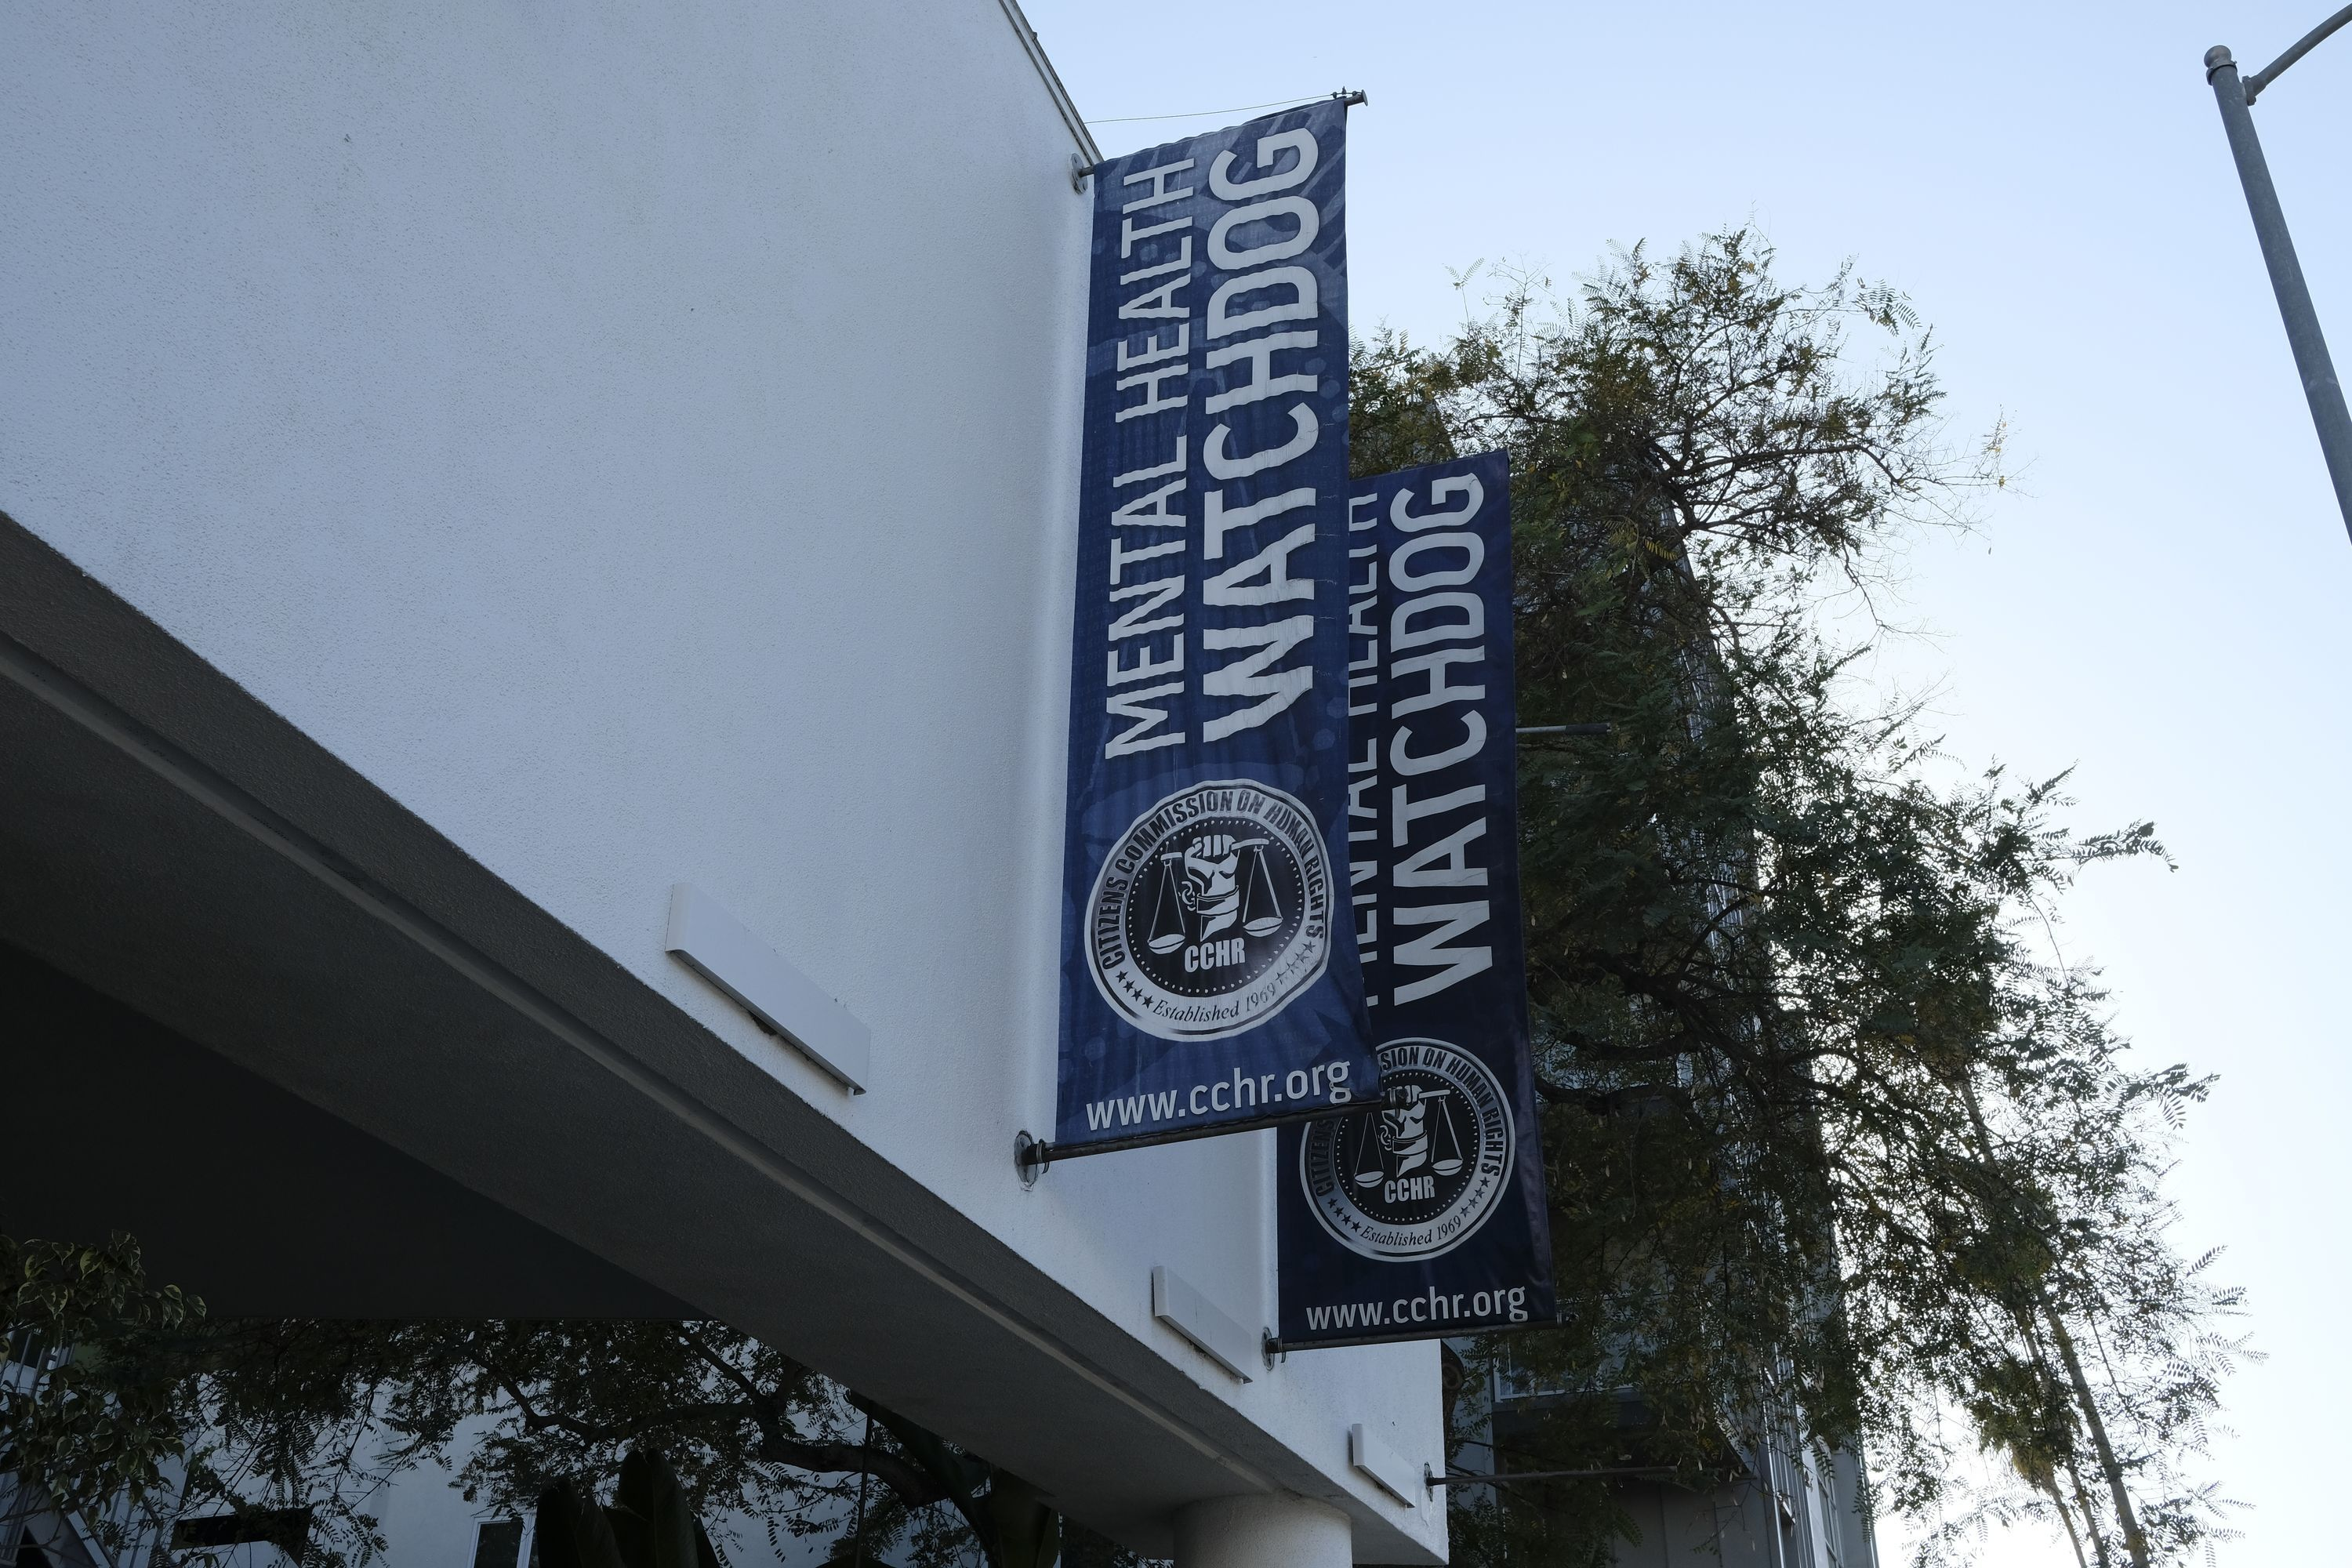 Banners along the museum building.